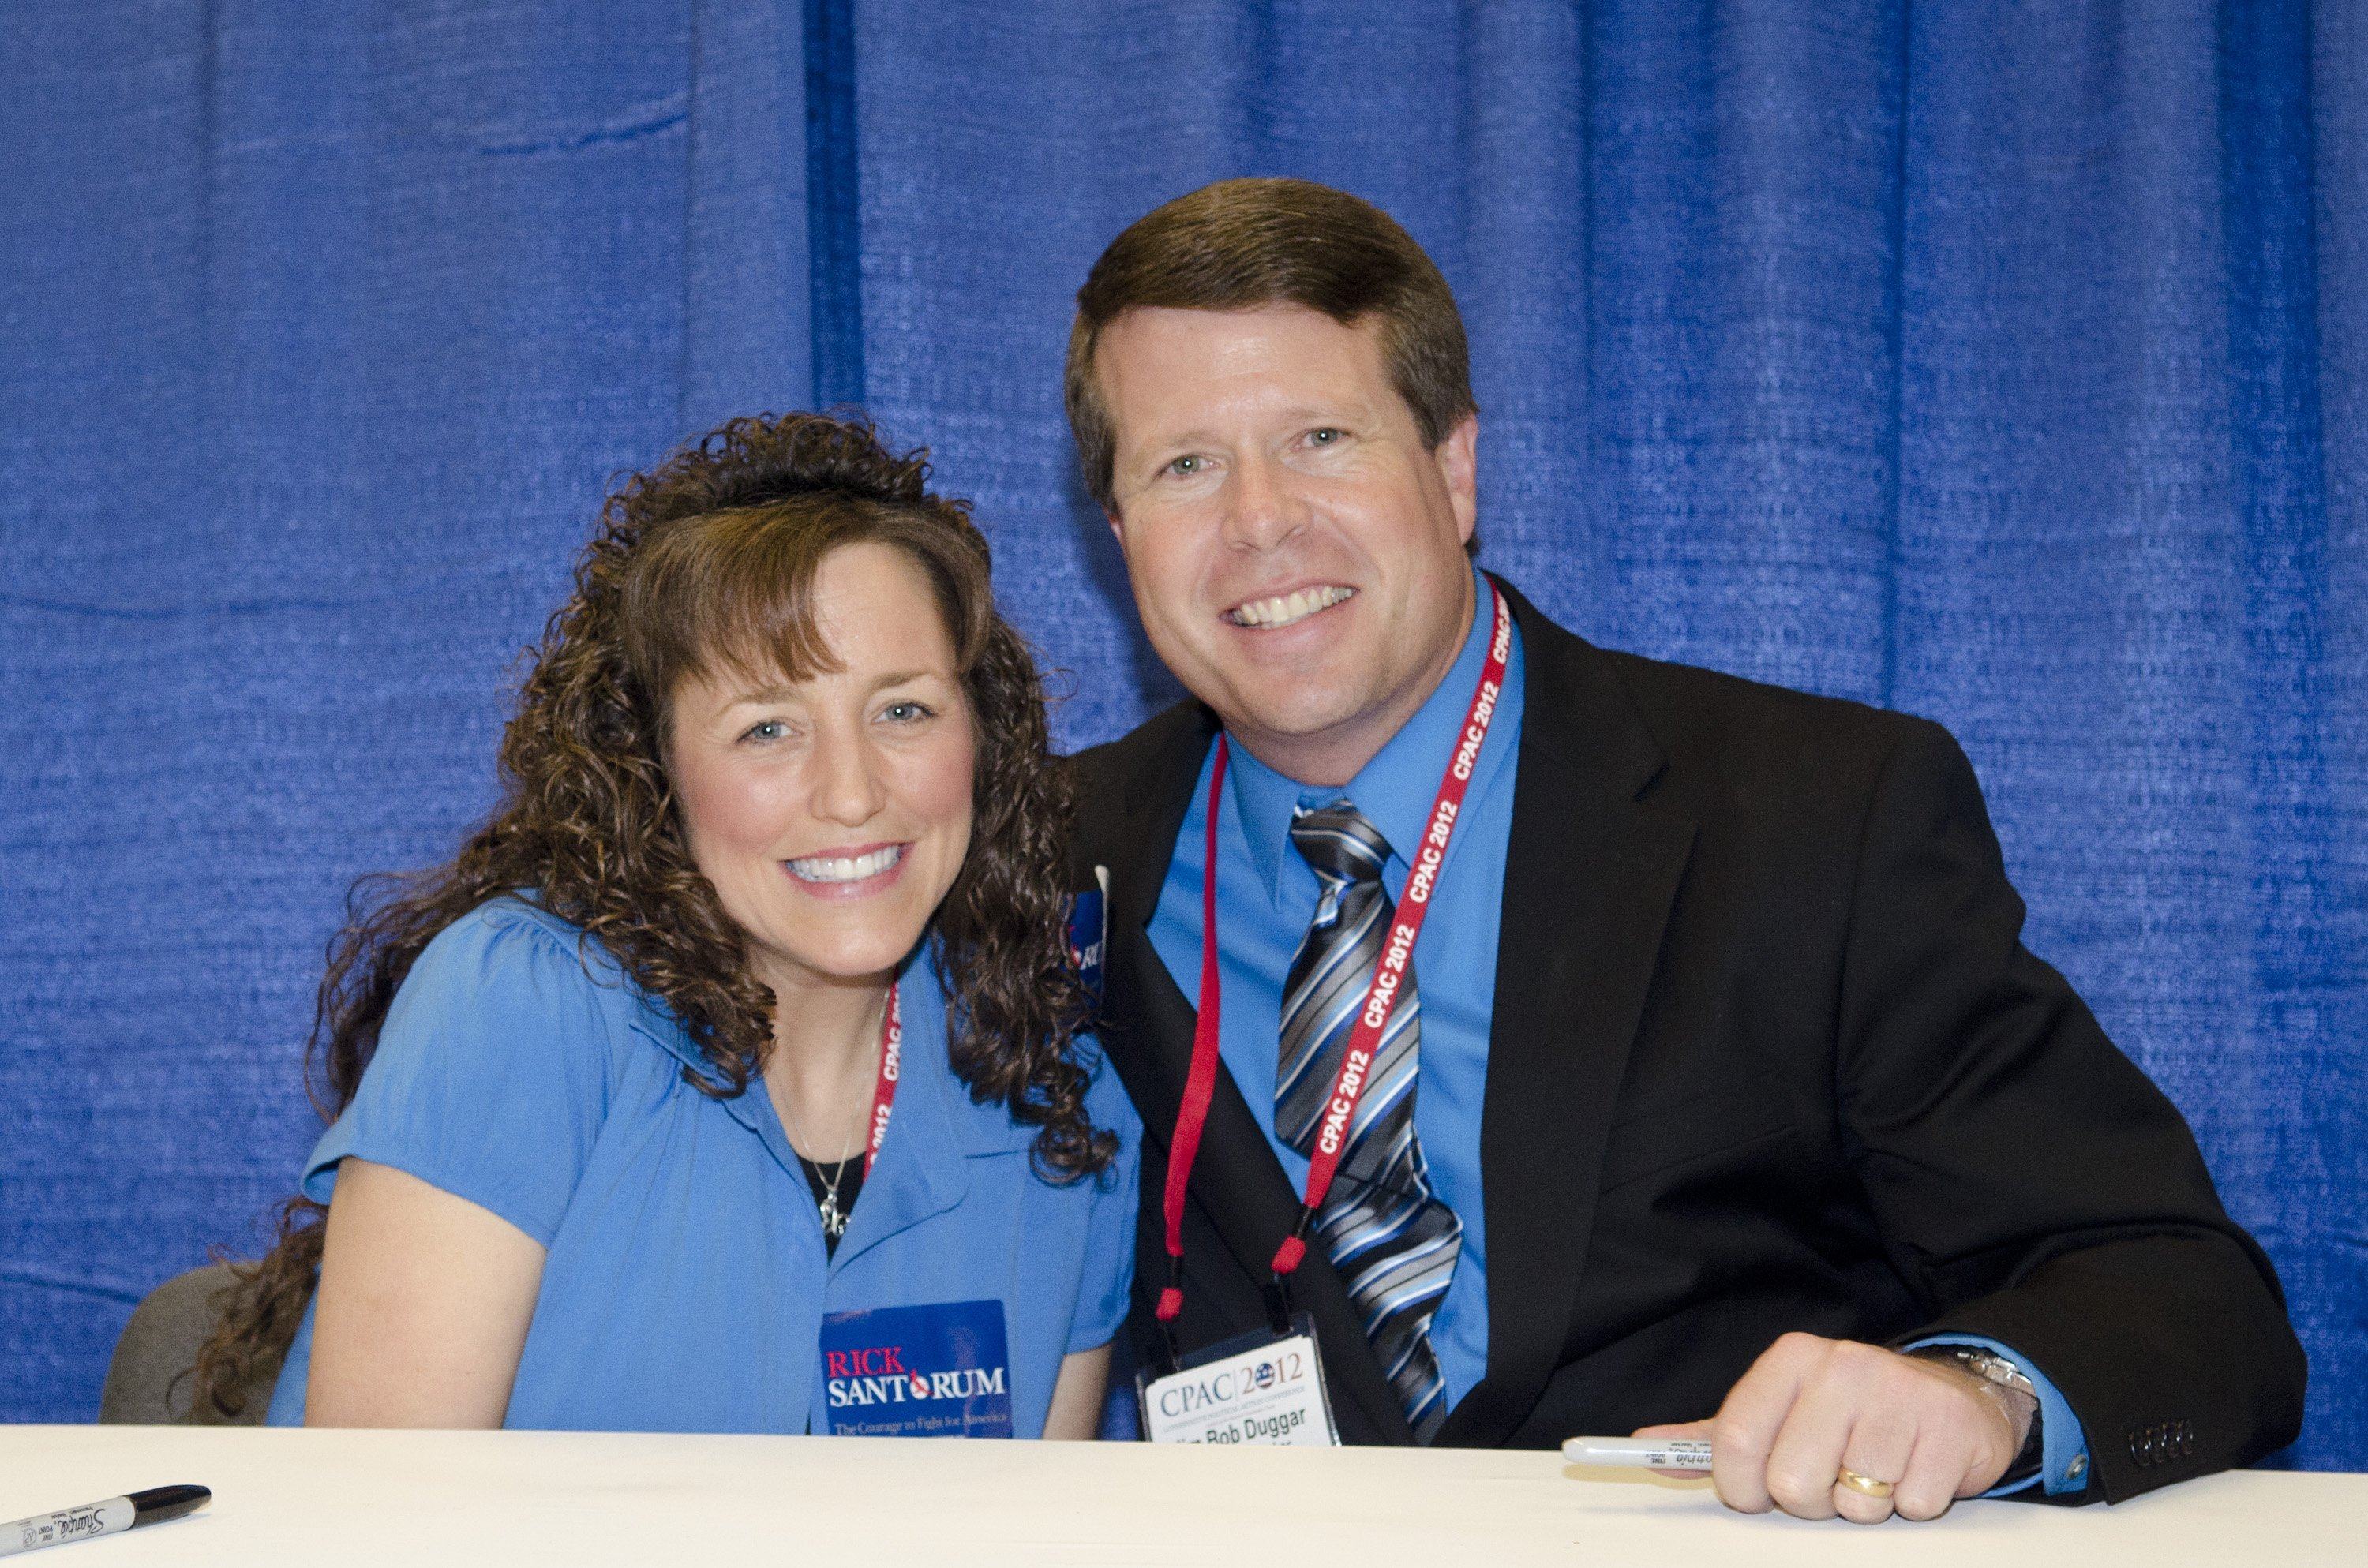 Jim Bob and Michelle Duggar. | Source: Getty Images